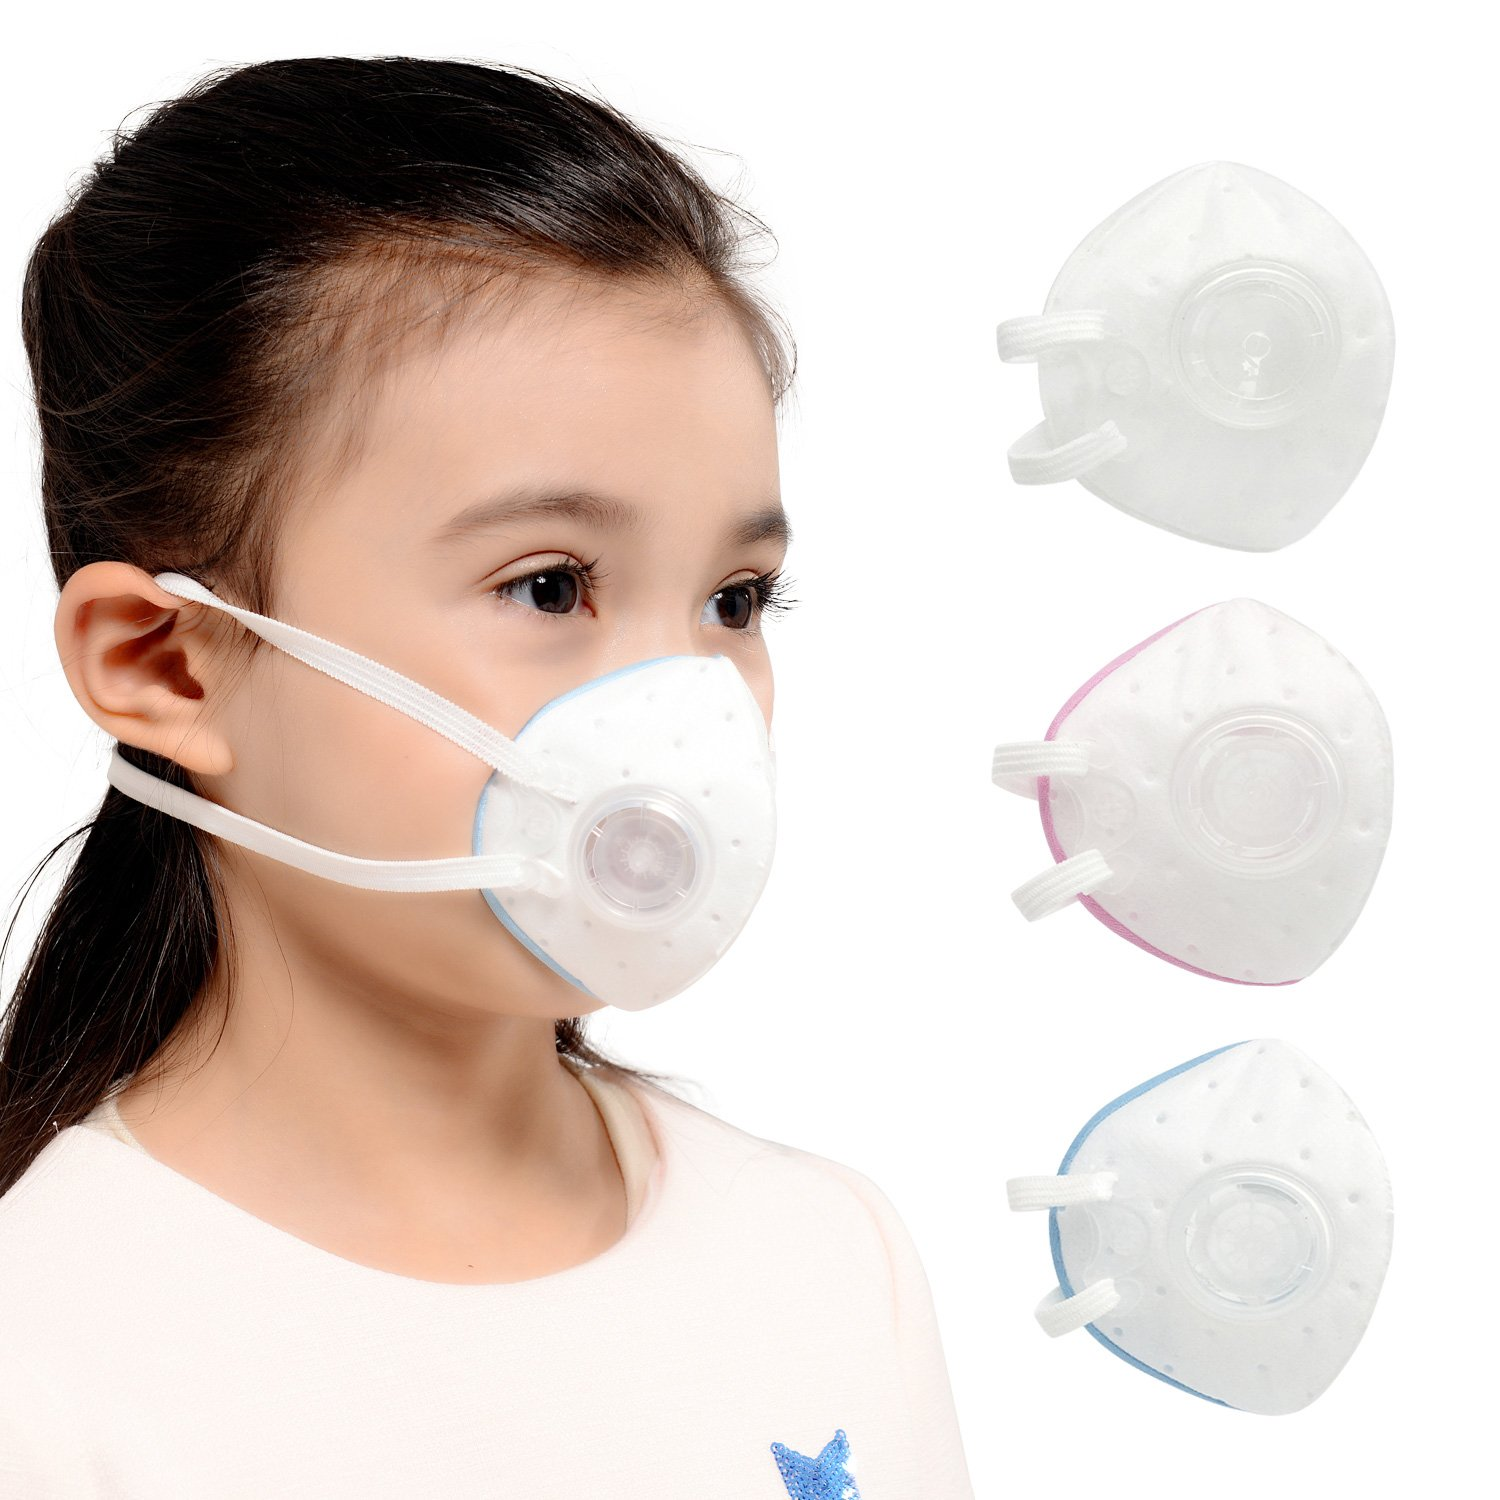 ANJEKANLE Reusable Dust Breathable Washable Sport Face Masks,Electrostatic Cotton Material Respirator Valve,for Kids (3-6Y) 3 pack